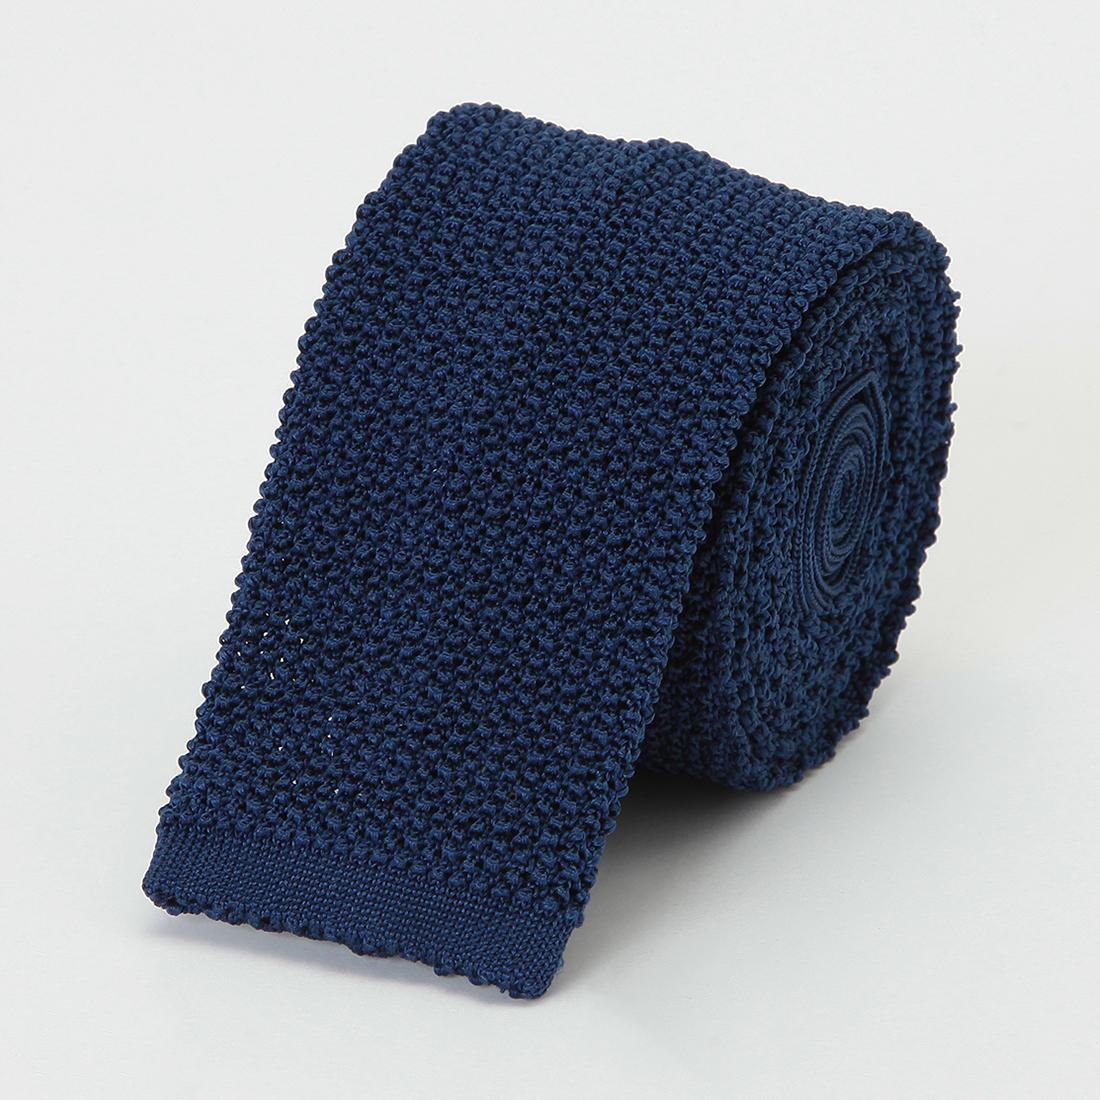 Barneys New York Silk Knit Tie 2011116: Blue